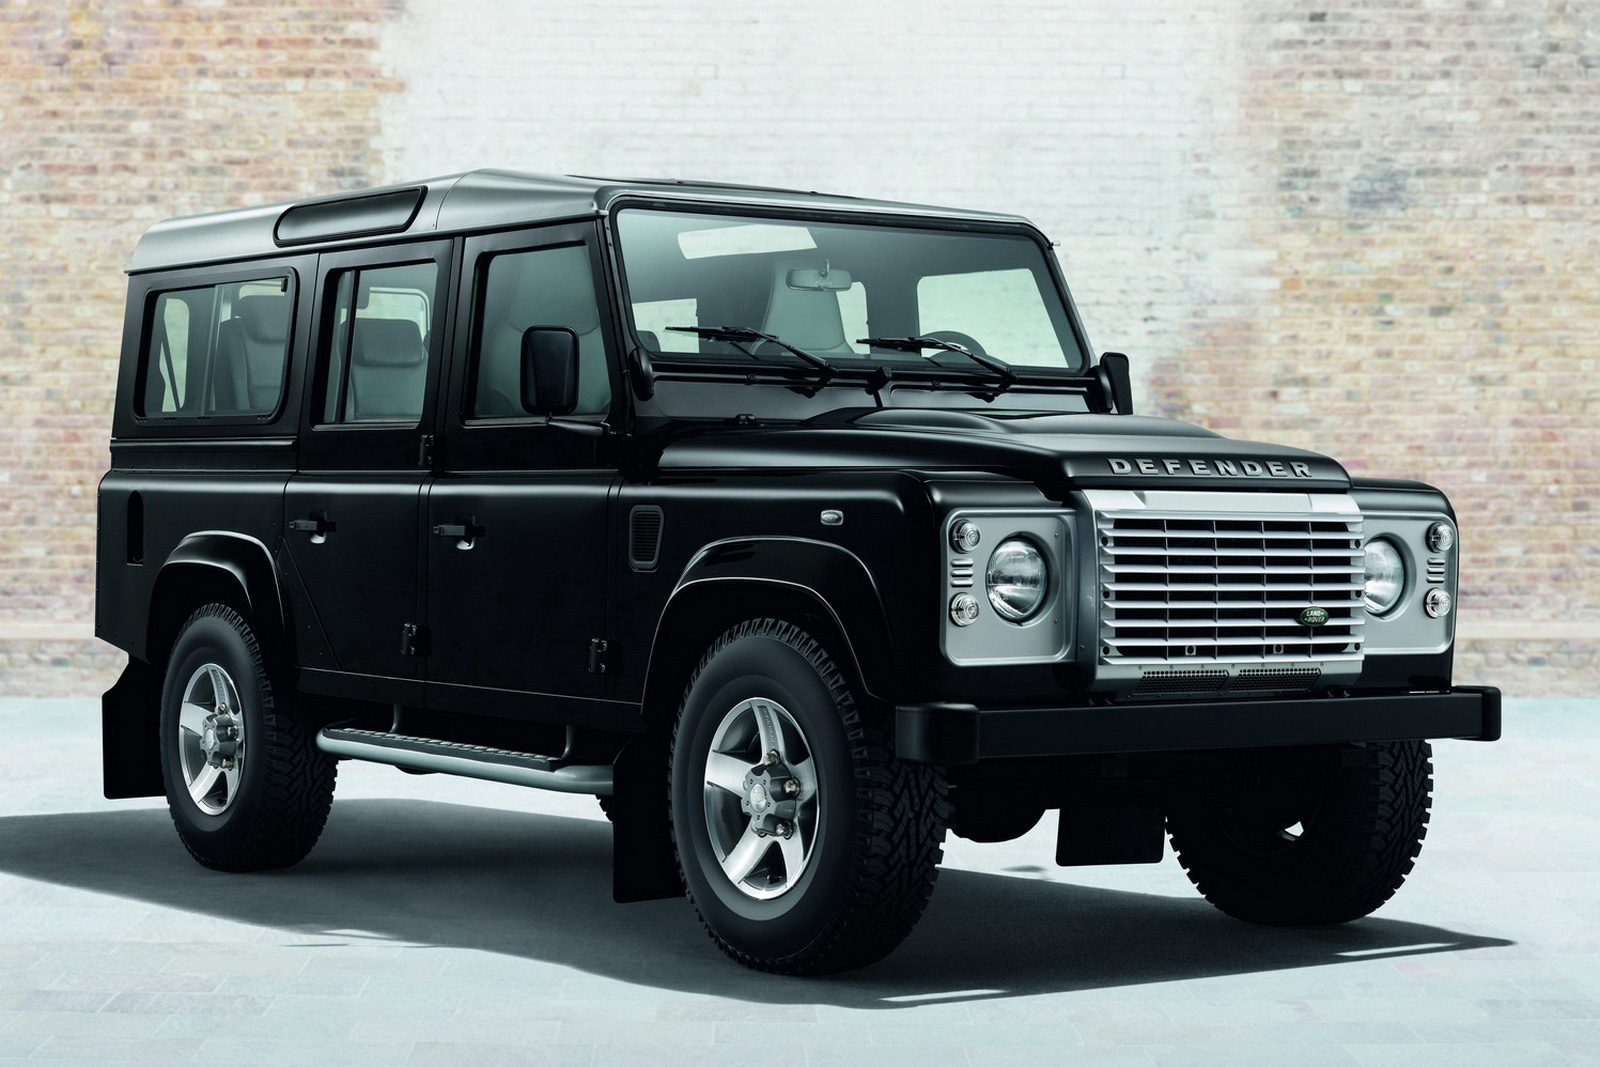 Land Rover Defender #9